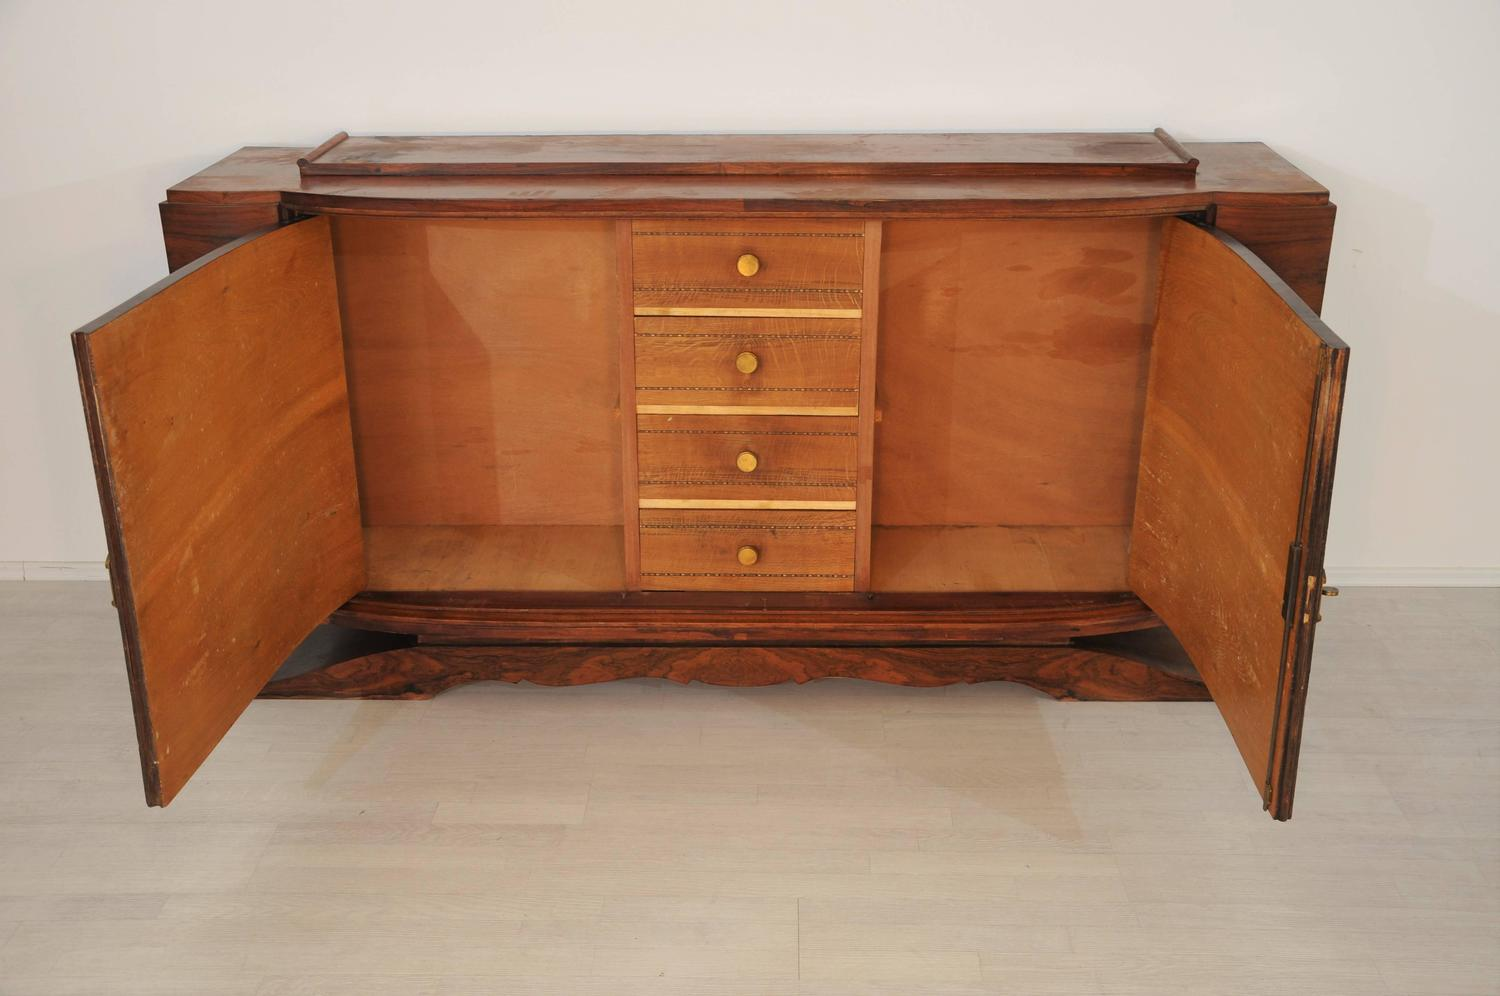 1930s art deco walnut buffet at 1stdibs. Black Bedroom Furniture Sets. Home Design Ideas